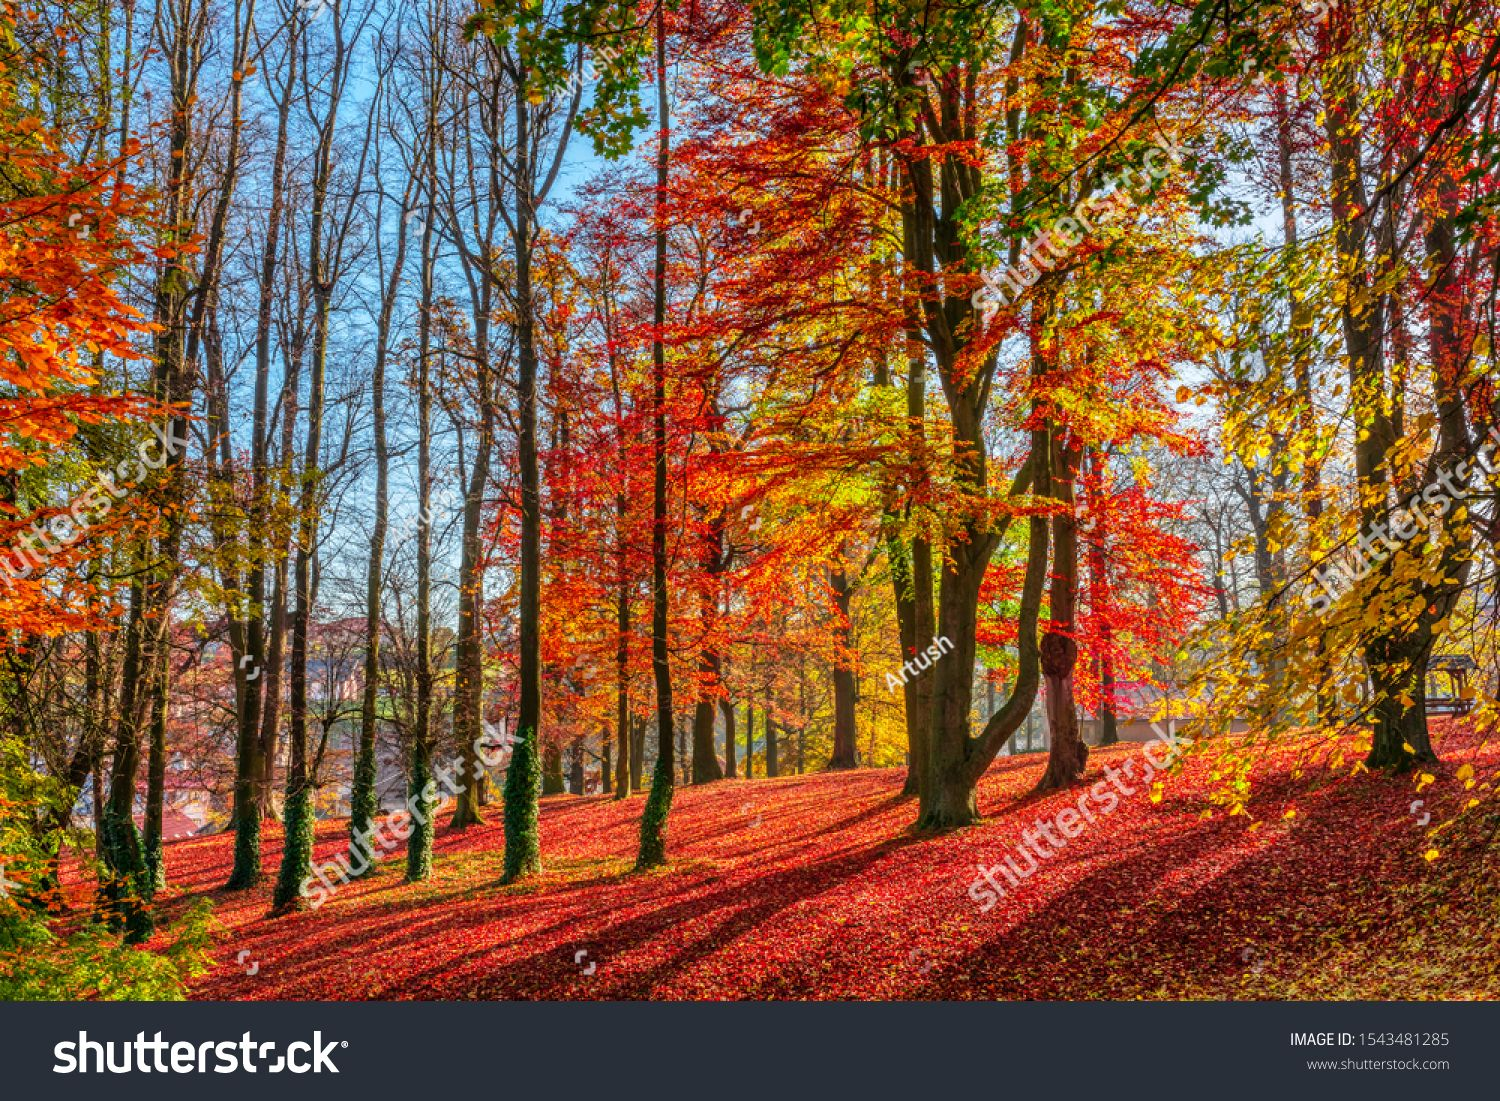 Romantic fall colored park with trees and morning sunlight. Autumn season natural background. Fall concept in park. Vivid colorful natural scene. Europe #Ad , #ad, #morning#trees#Autumn#sunlight